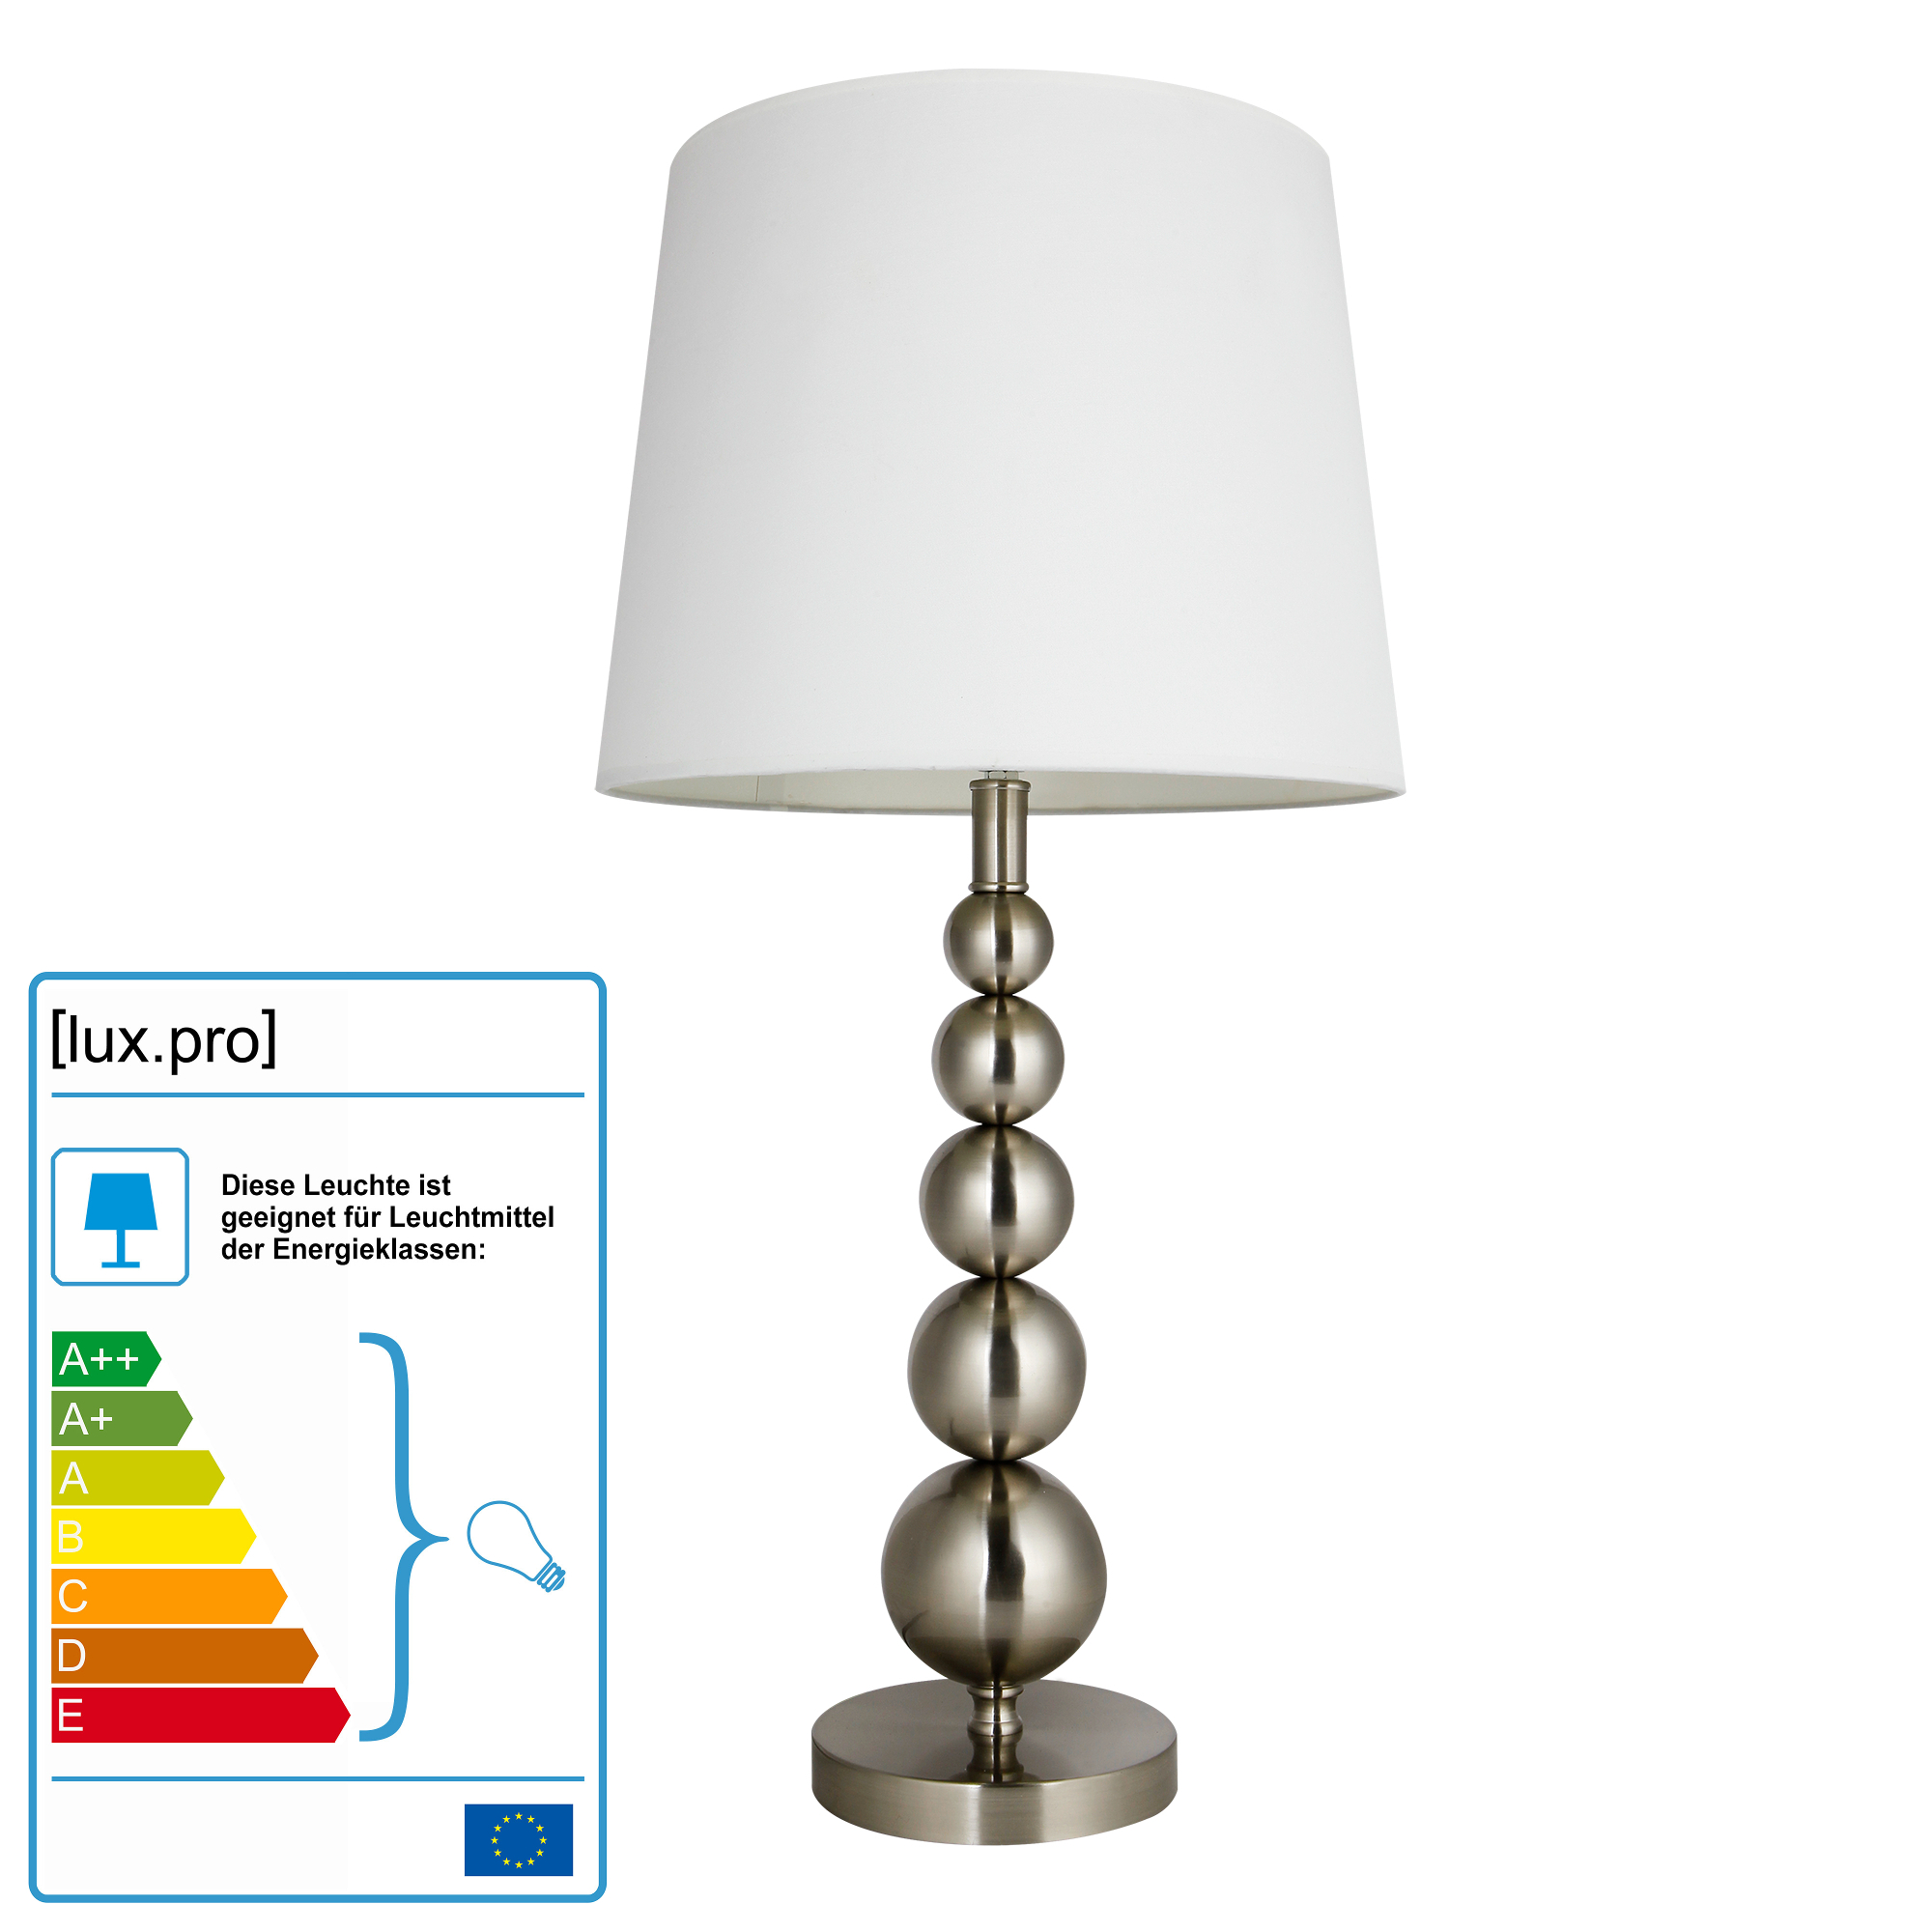 grand lampe de table h52cm 36cm luminaire blanc ebay. Black Bedroom Furniture Sets. Home Design Ideas